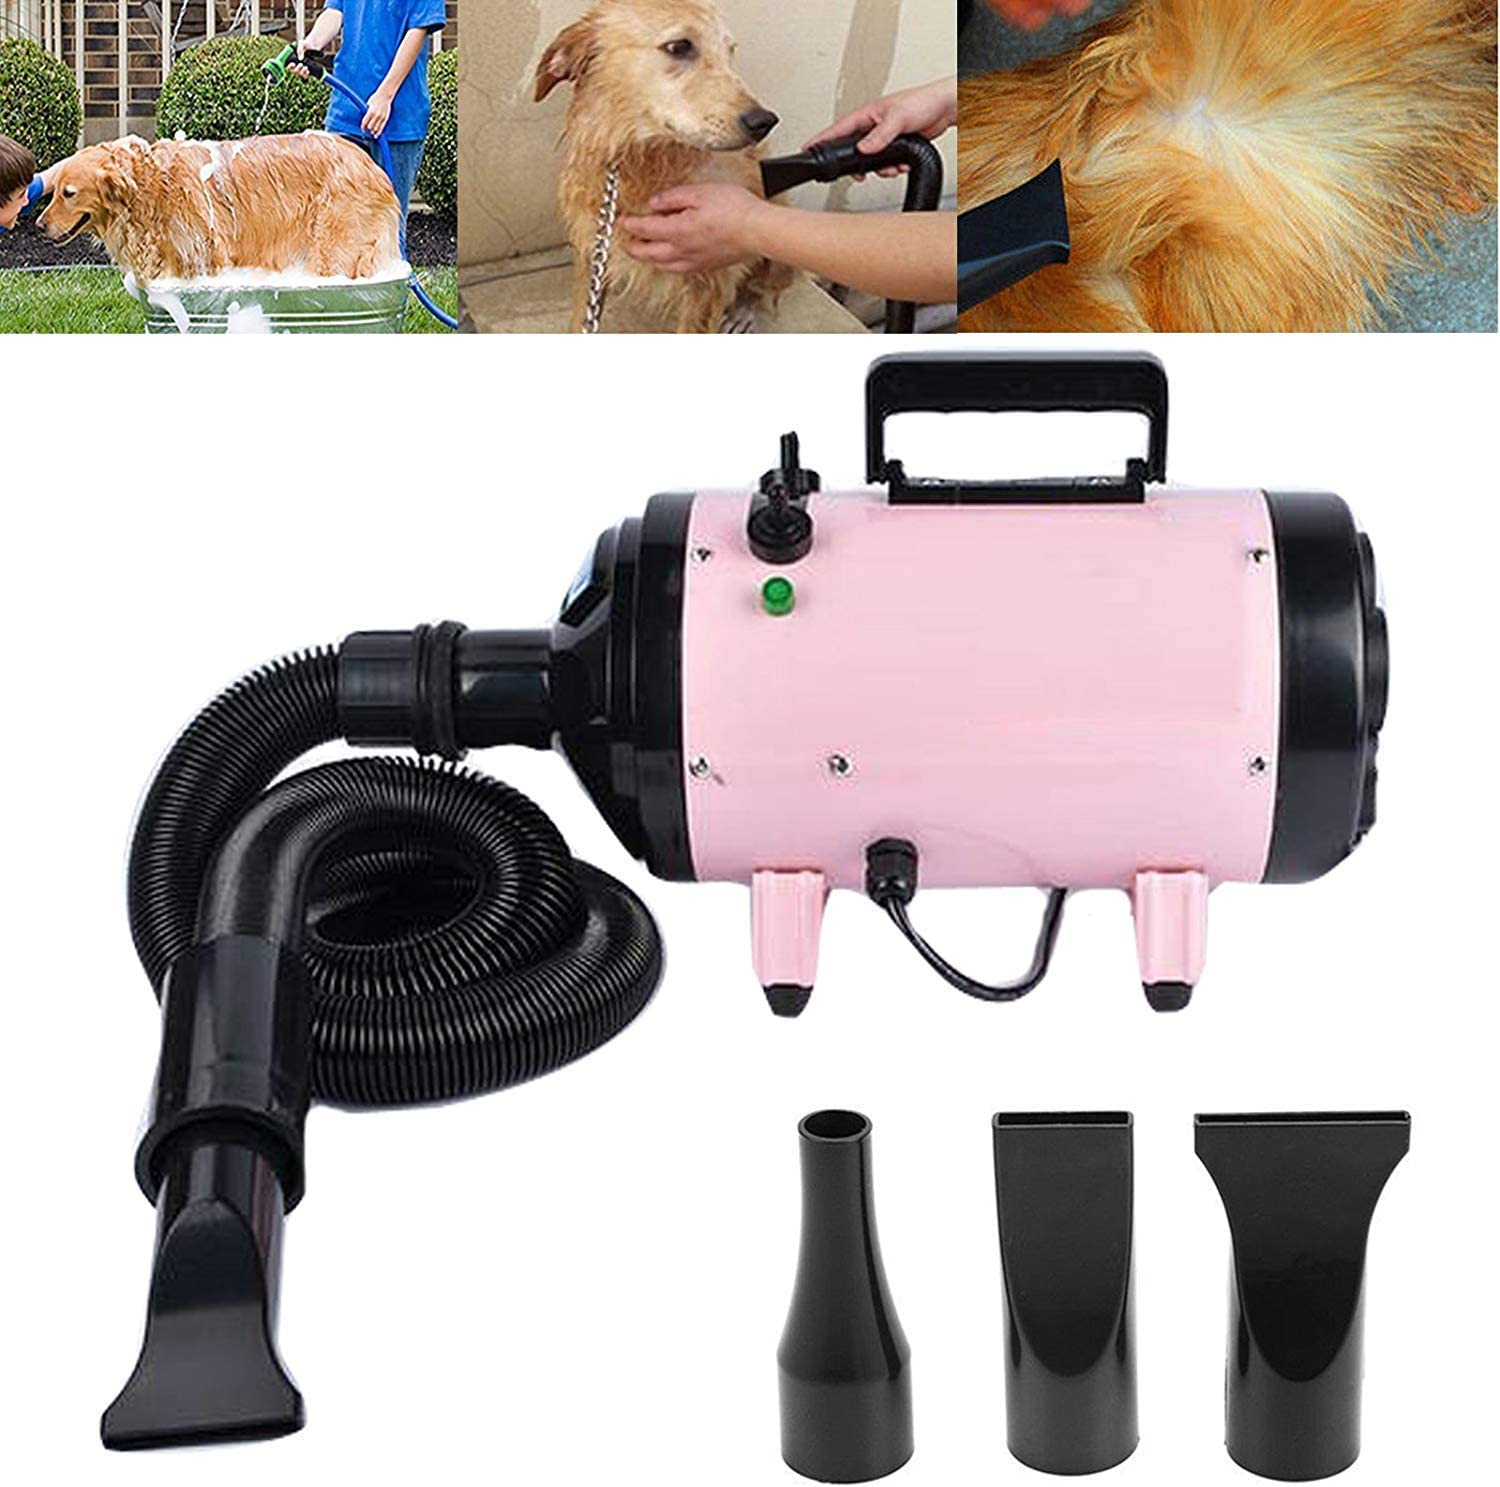 WYJW Max 73% OFF Dryer Blower for Dog Gifts Cat Velocity Grooming High Blaster Fur